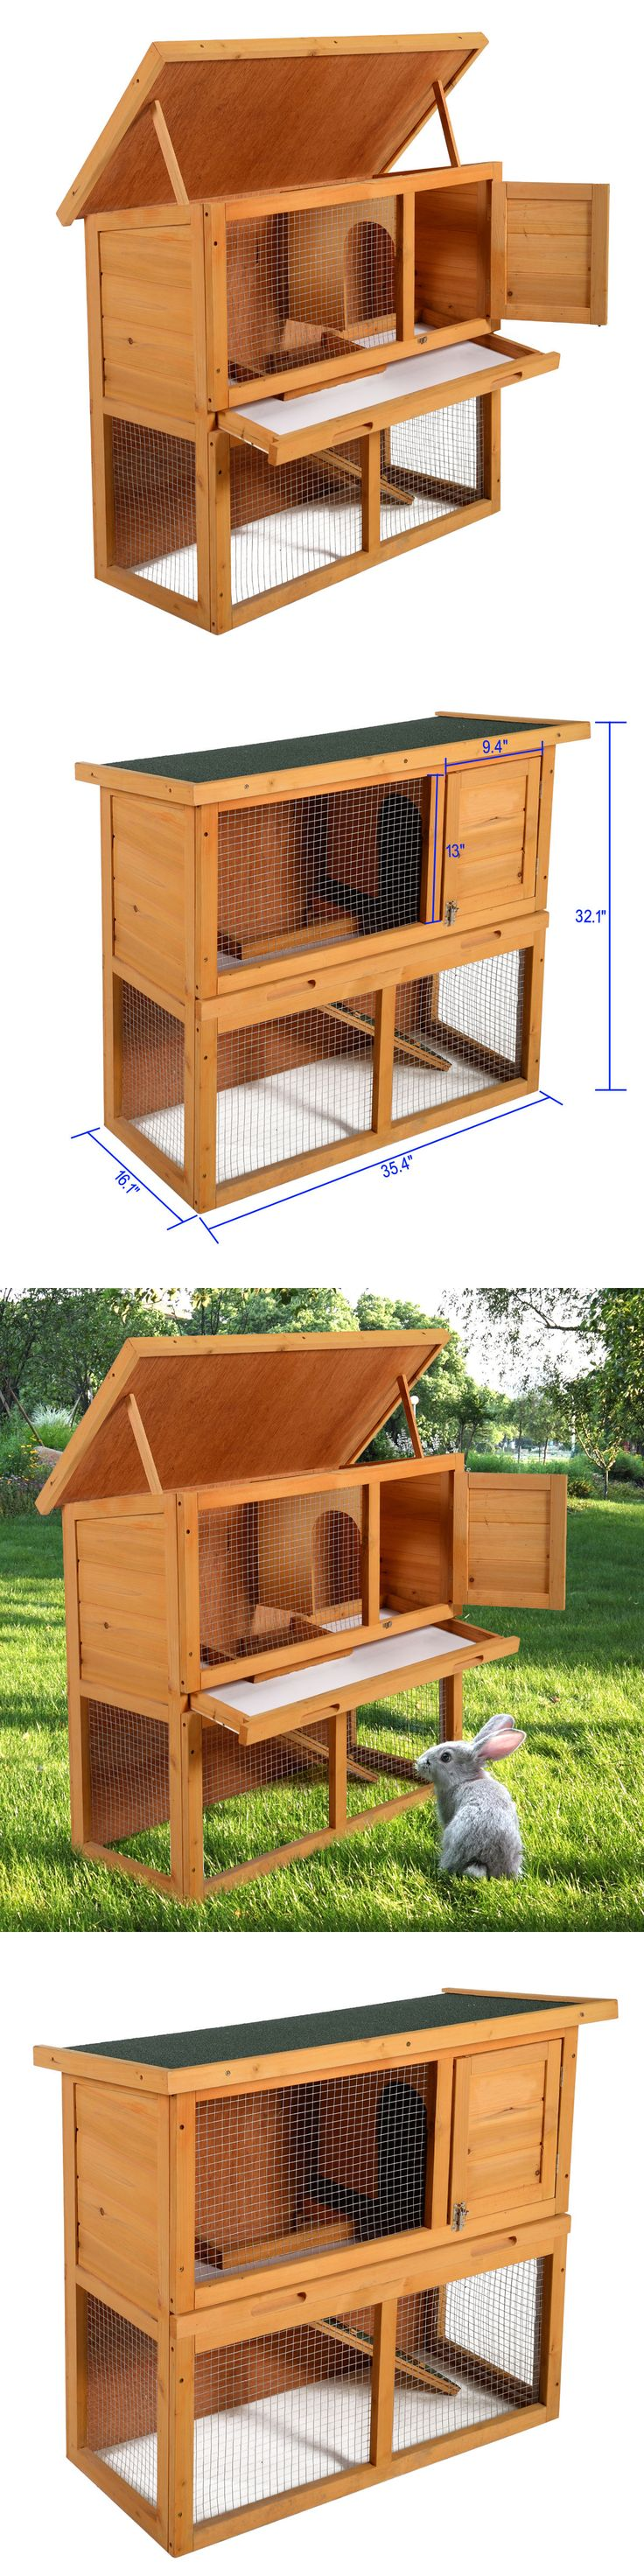 Backyard Poultry Supplies 177801: Wooden Chicken Coop Hen House 36 Rabbit Wood Hutch Poultry Cage Habitat -> BUY IT NOW ONLY: $71.99 on eBay!